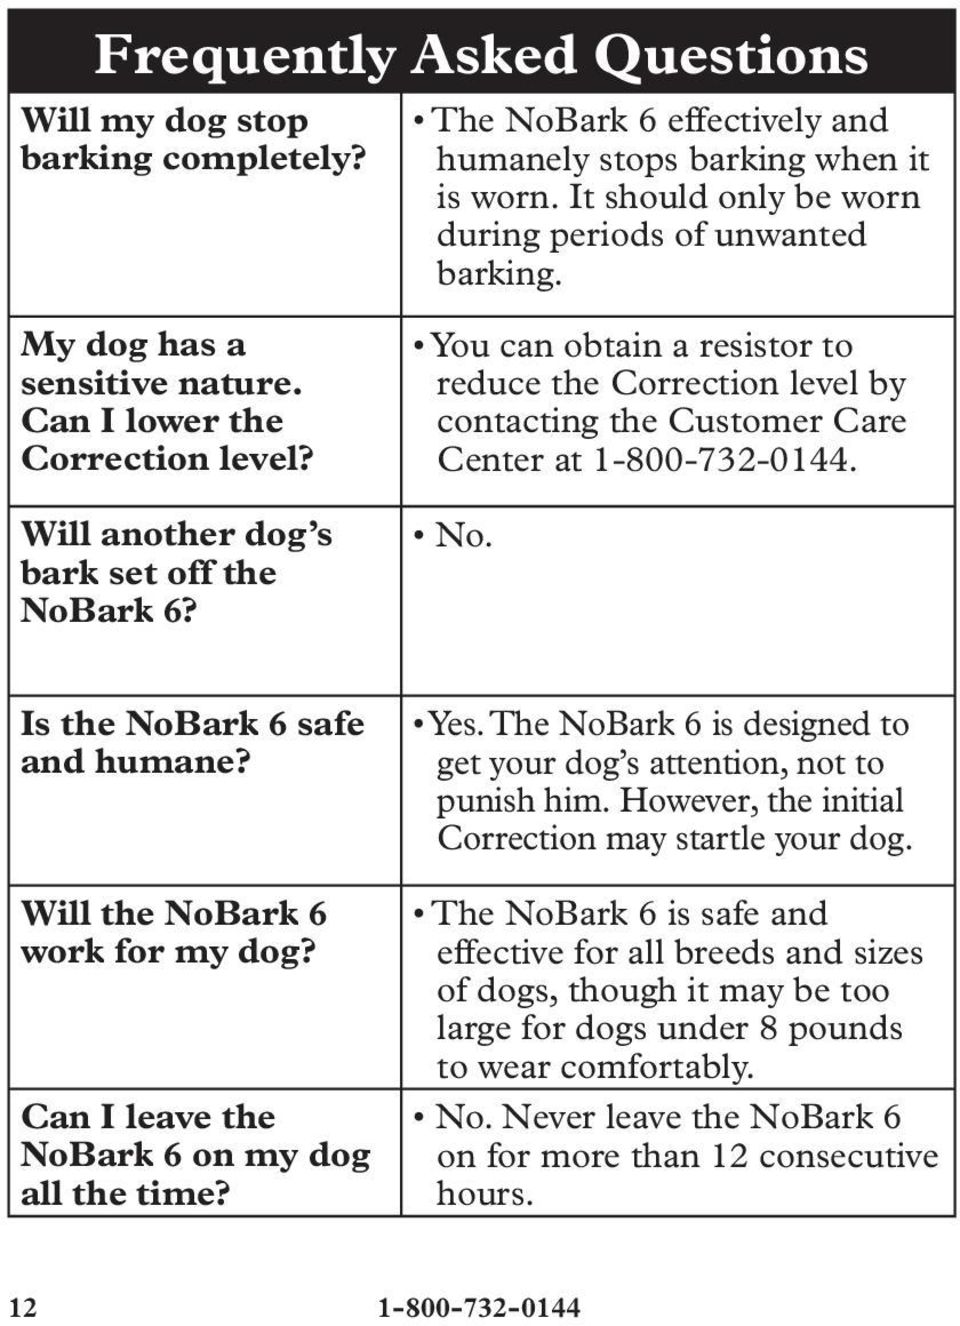 You can obtain a resistor to reduce the Correction level by contacting the Customer Care Center at 1-800-732-0144. No. Is the NoBark 6 safe and humane? Will the NoBark 6 work for my dog?